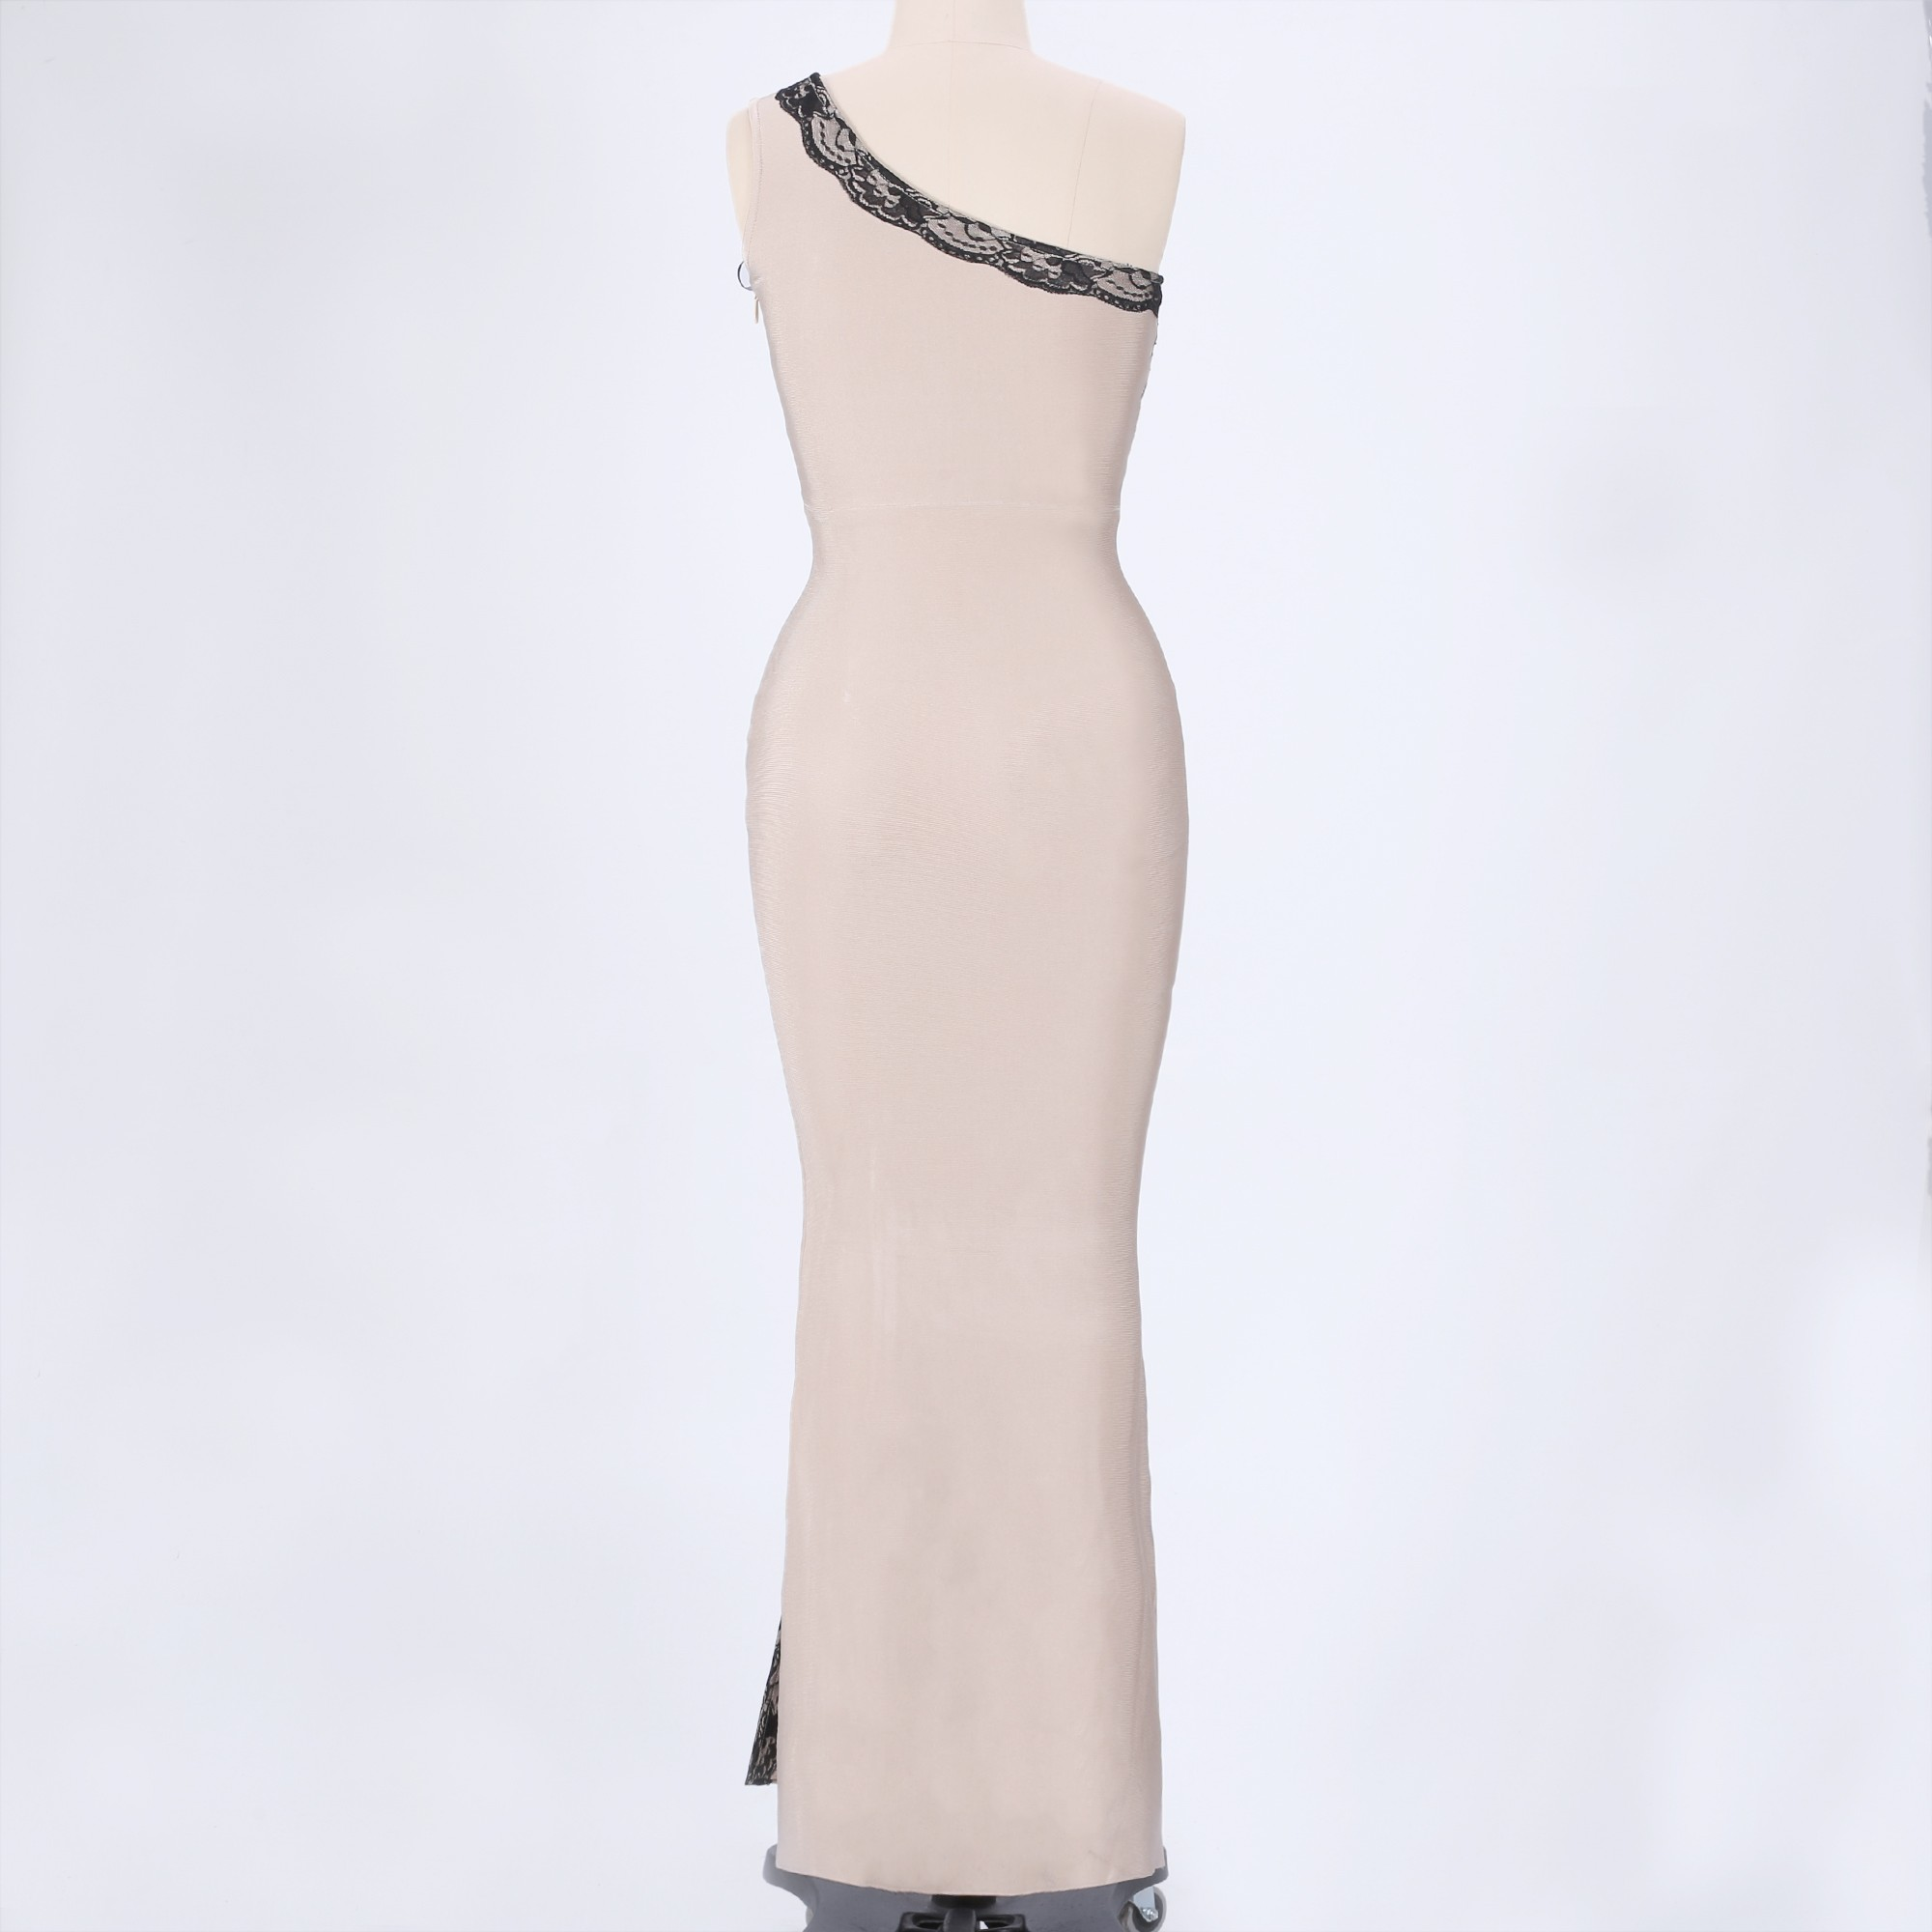 Nude One Shoulder Sleeveless Maxi Lace Fashion Bandage Dress HT0097-Nude